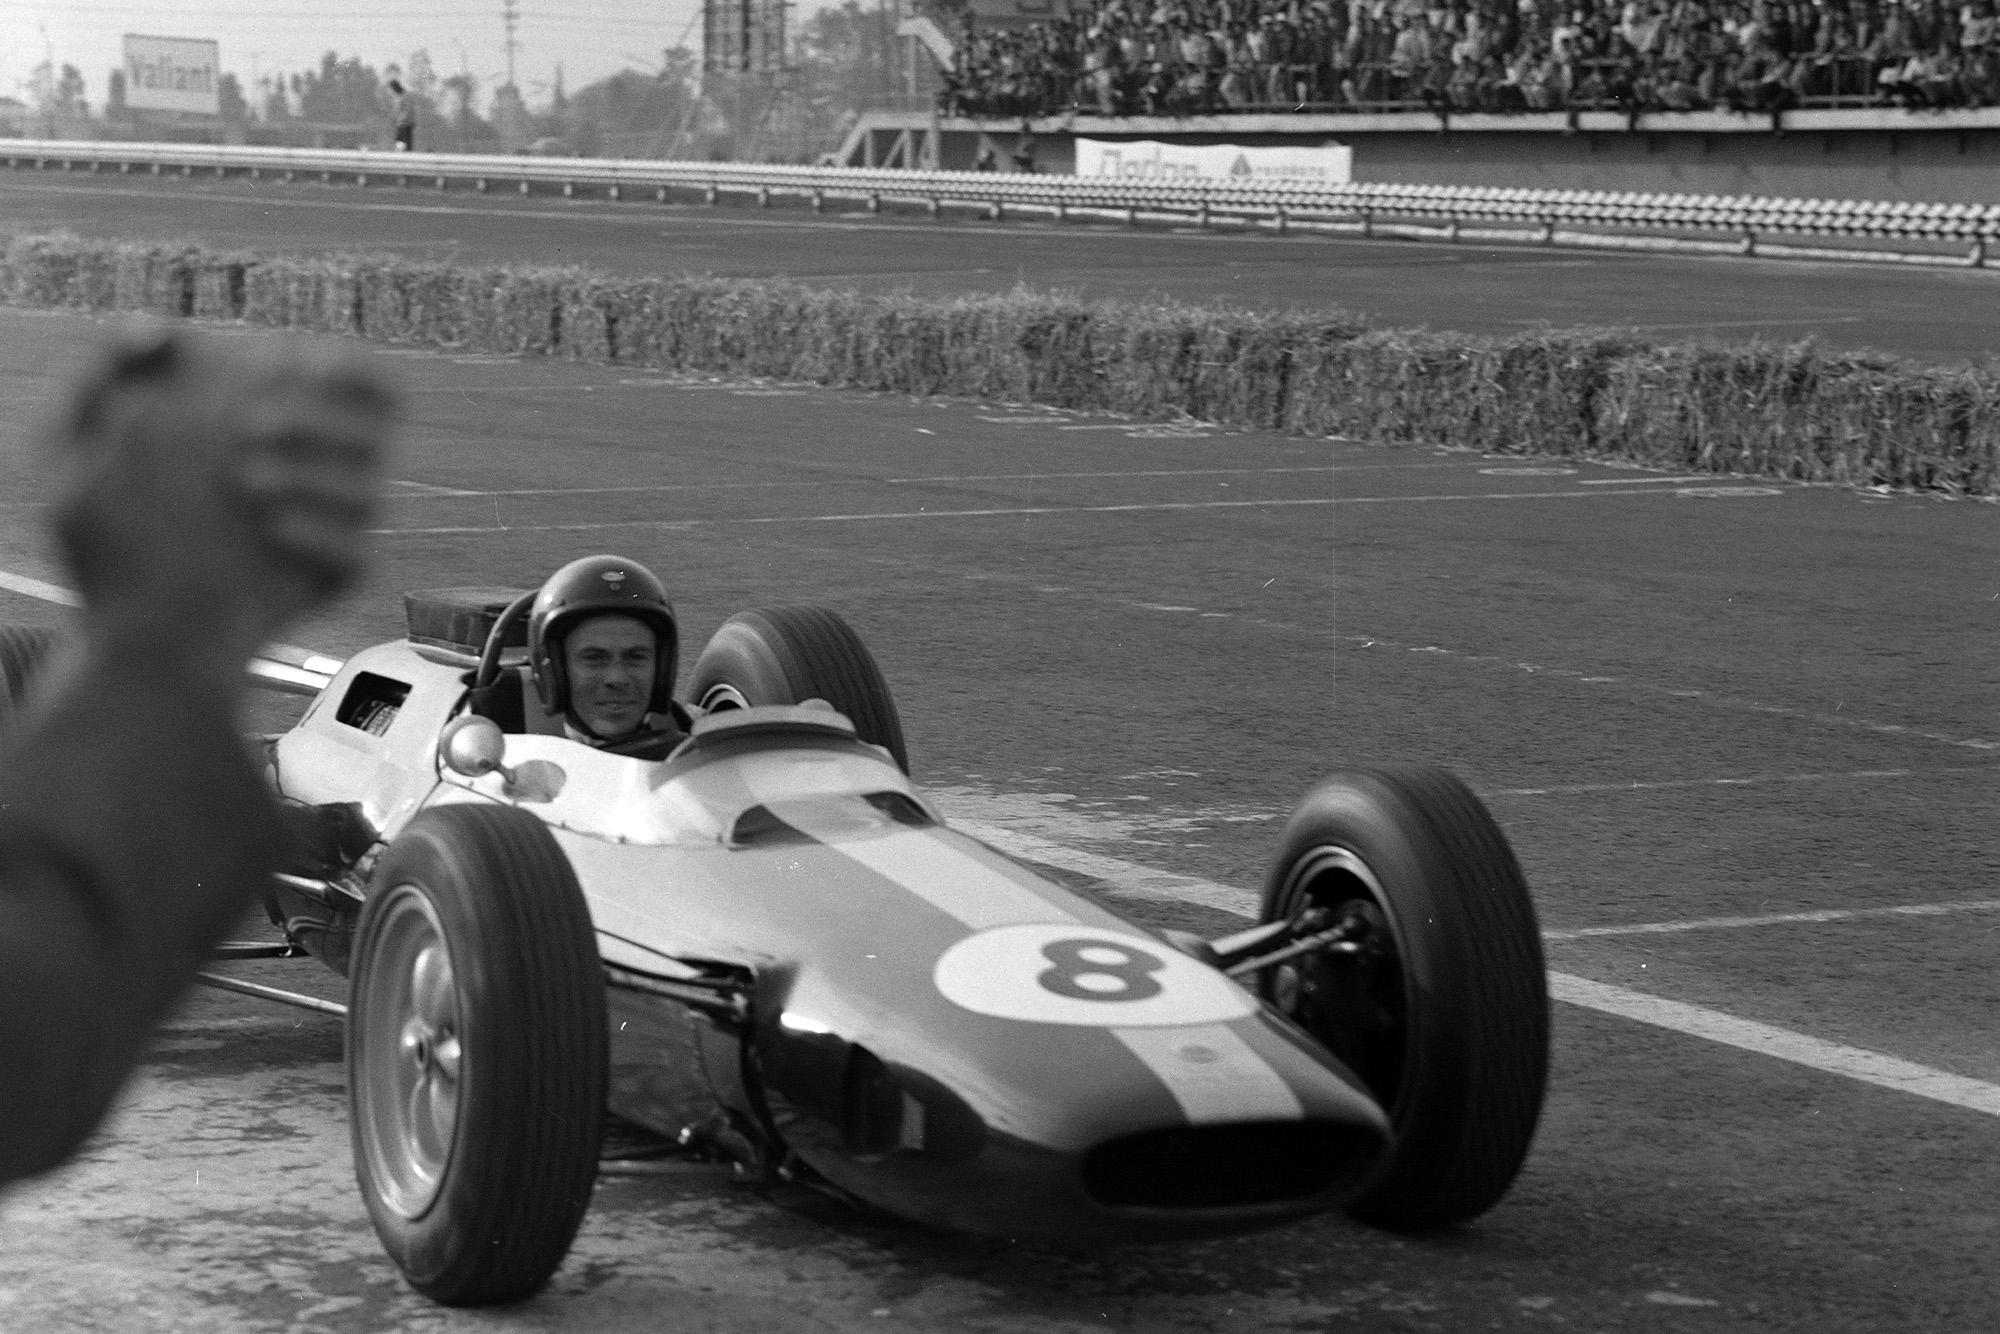 Jim Clark, Lotus 25 Climax, pulls into the pitlane after the race.